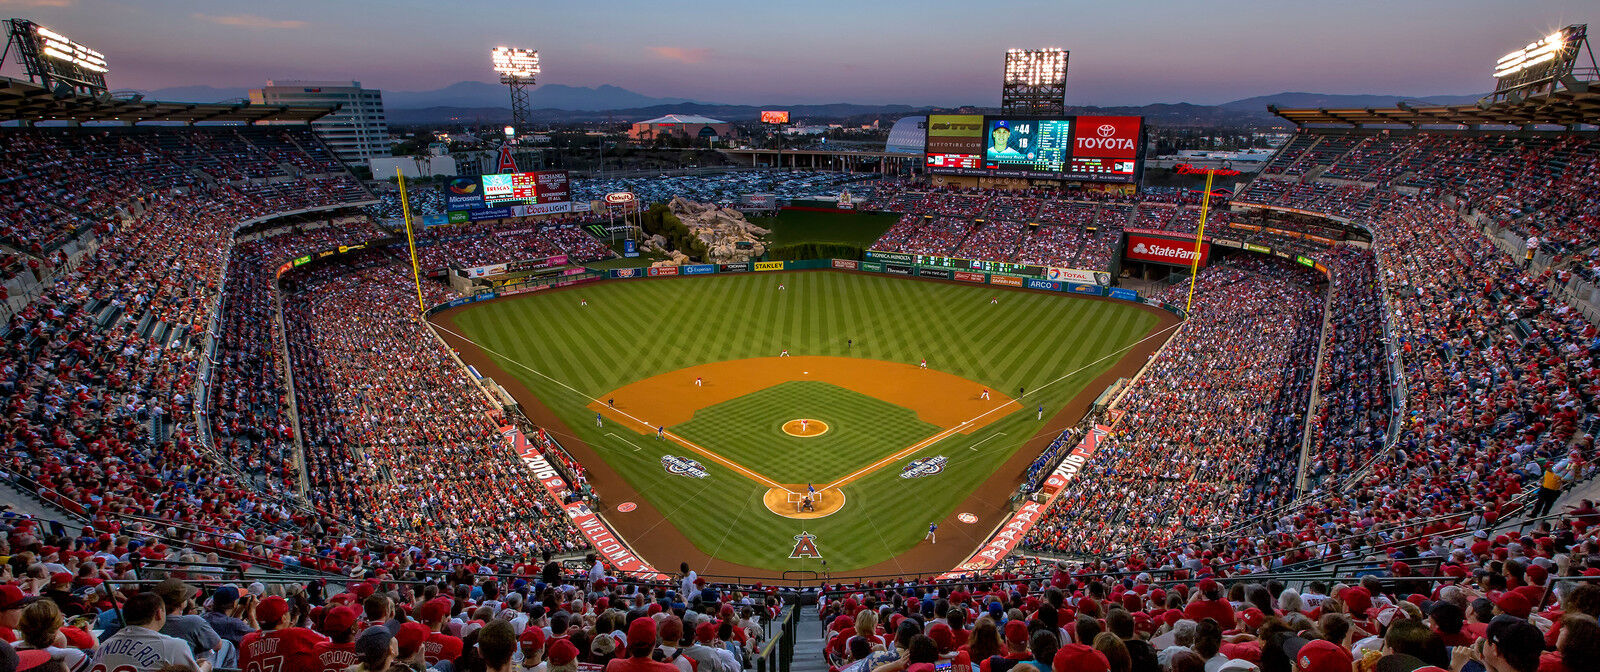 Oakland Athletics at Los Angeles Angels Tickets (Trout MVP Season Bobblehead)